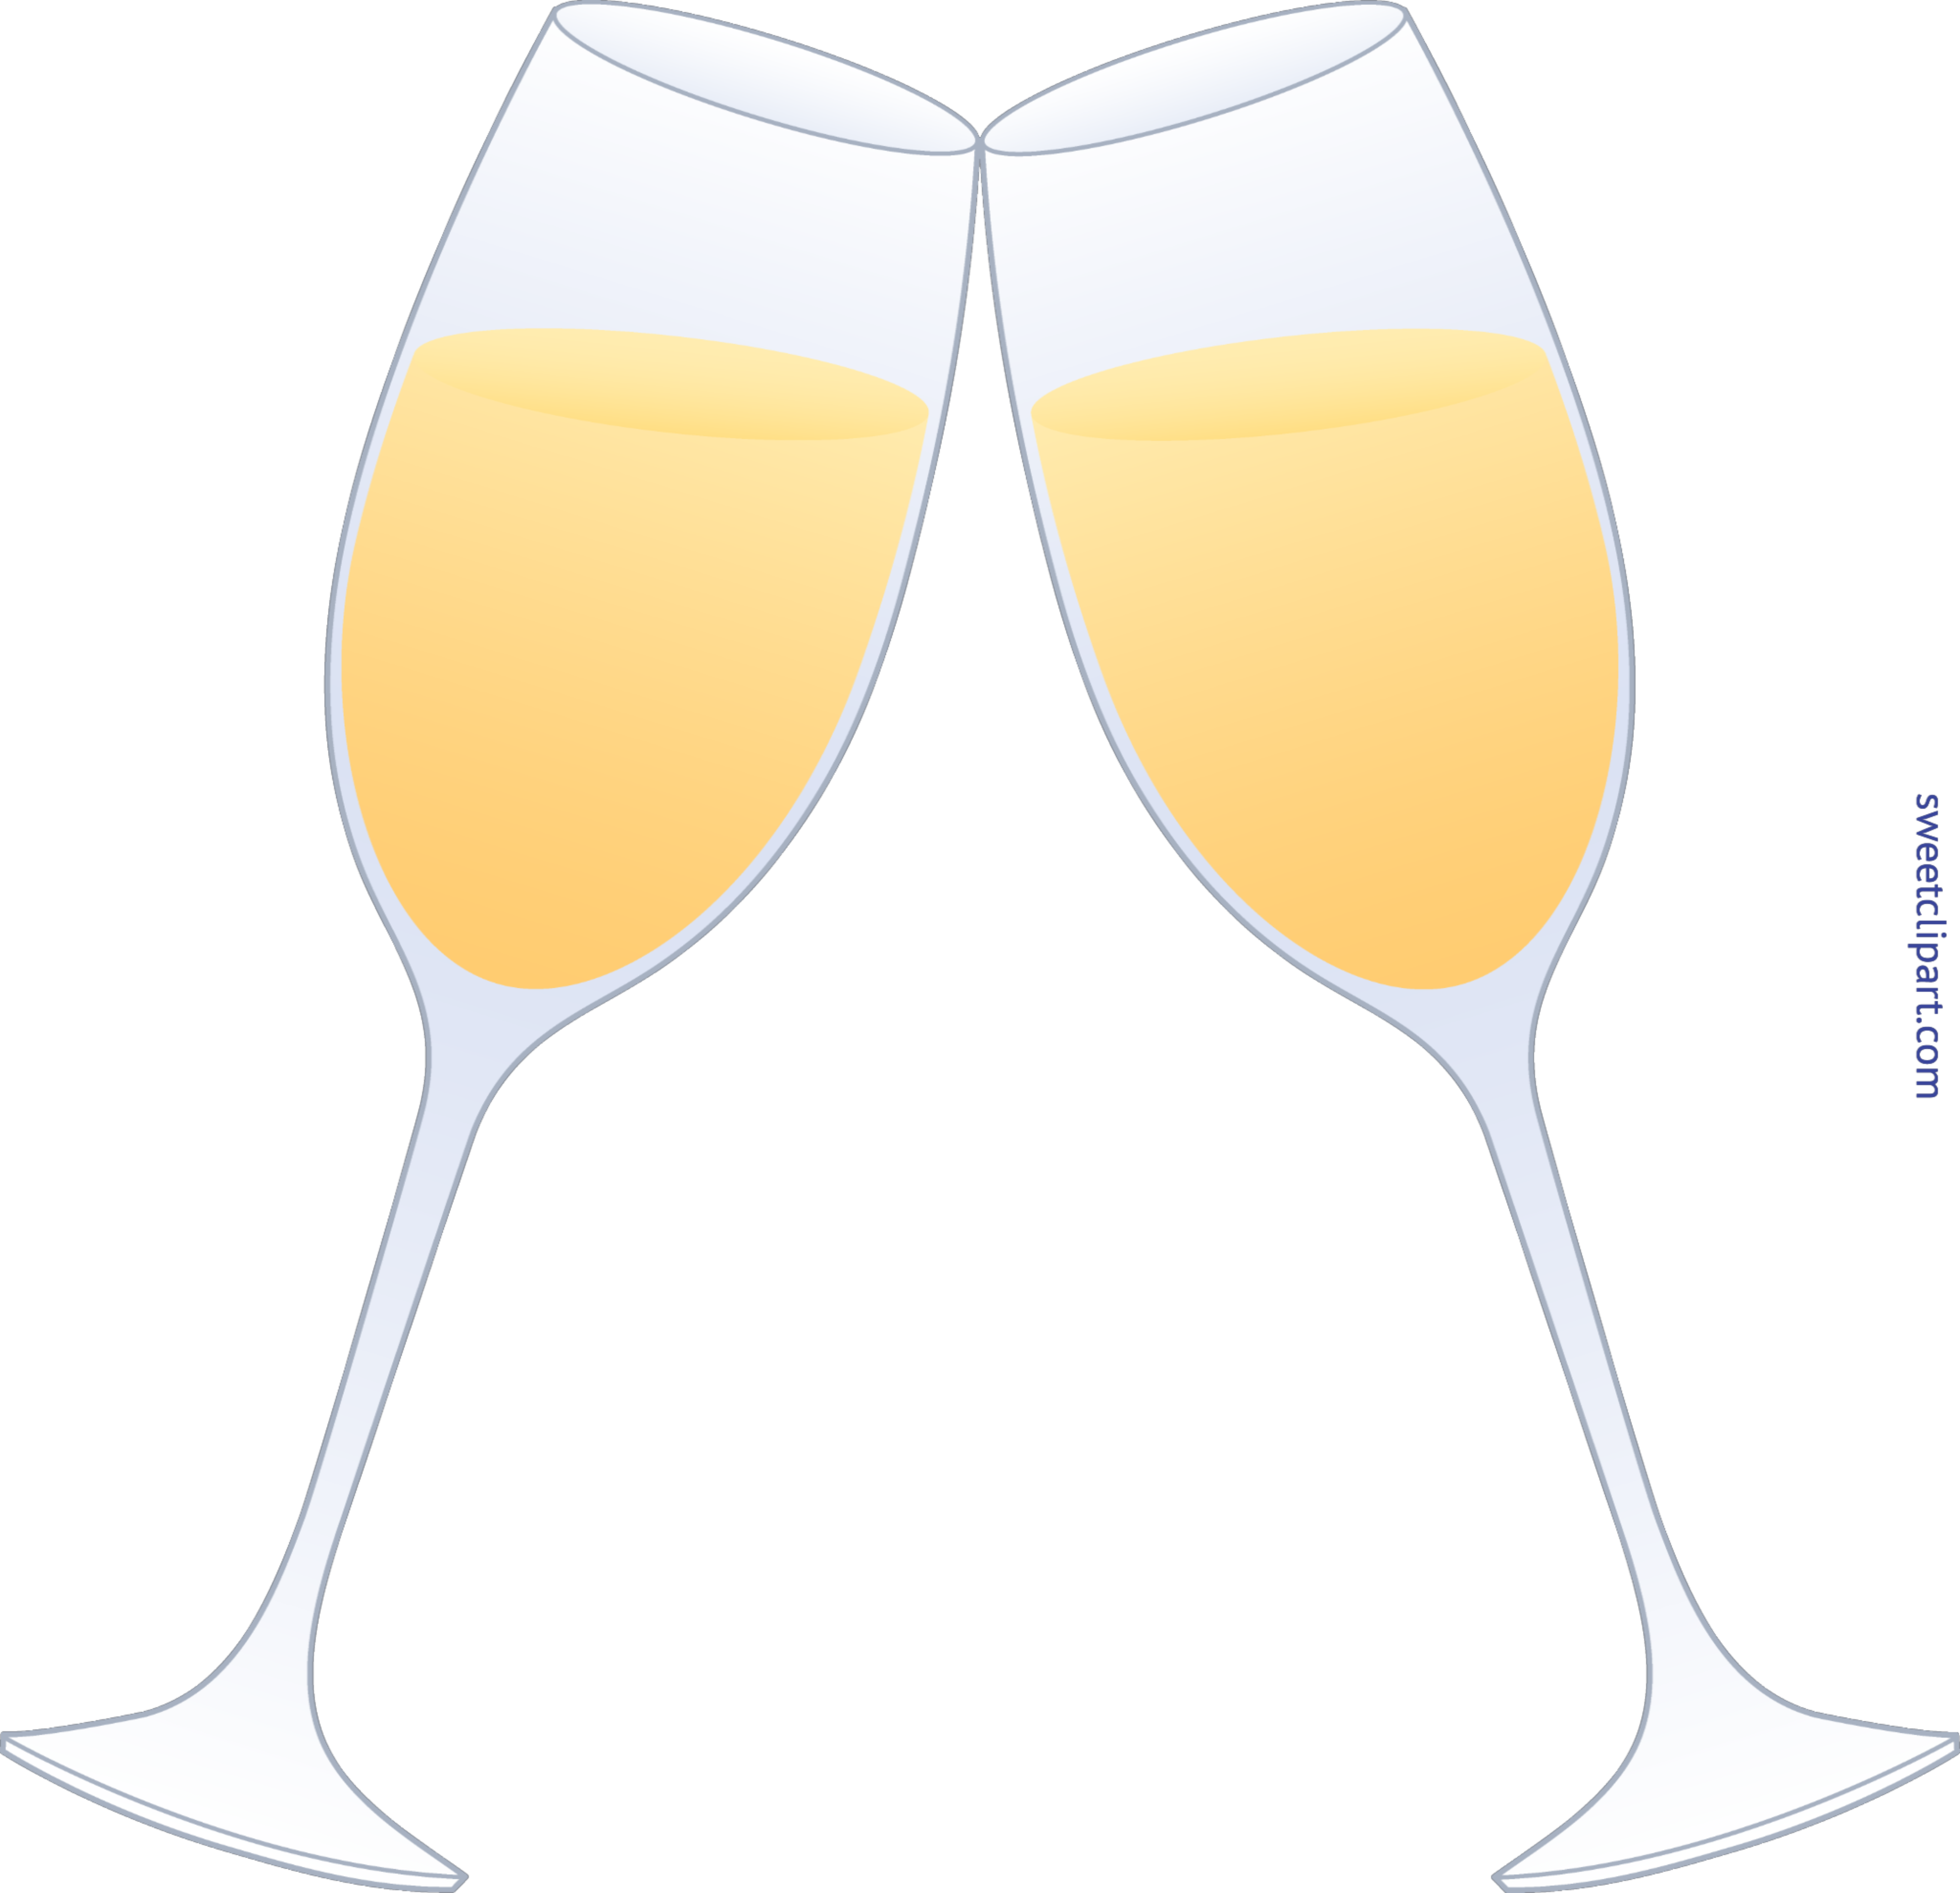 champagne glasses clip art sweet clip art rh m sweetclipart com clipart champagne bottle clip art champagne glass with bubbles